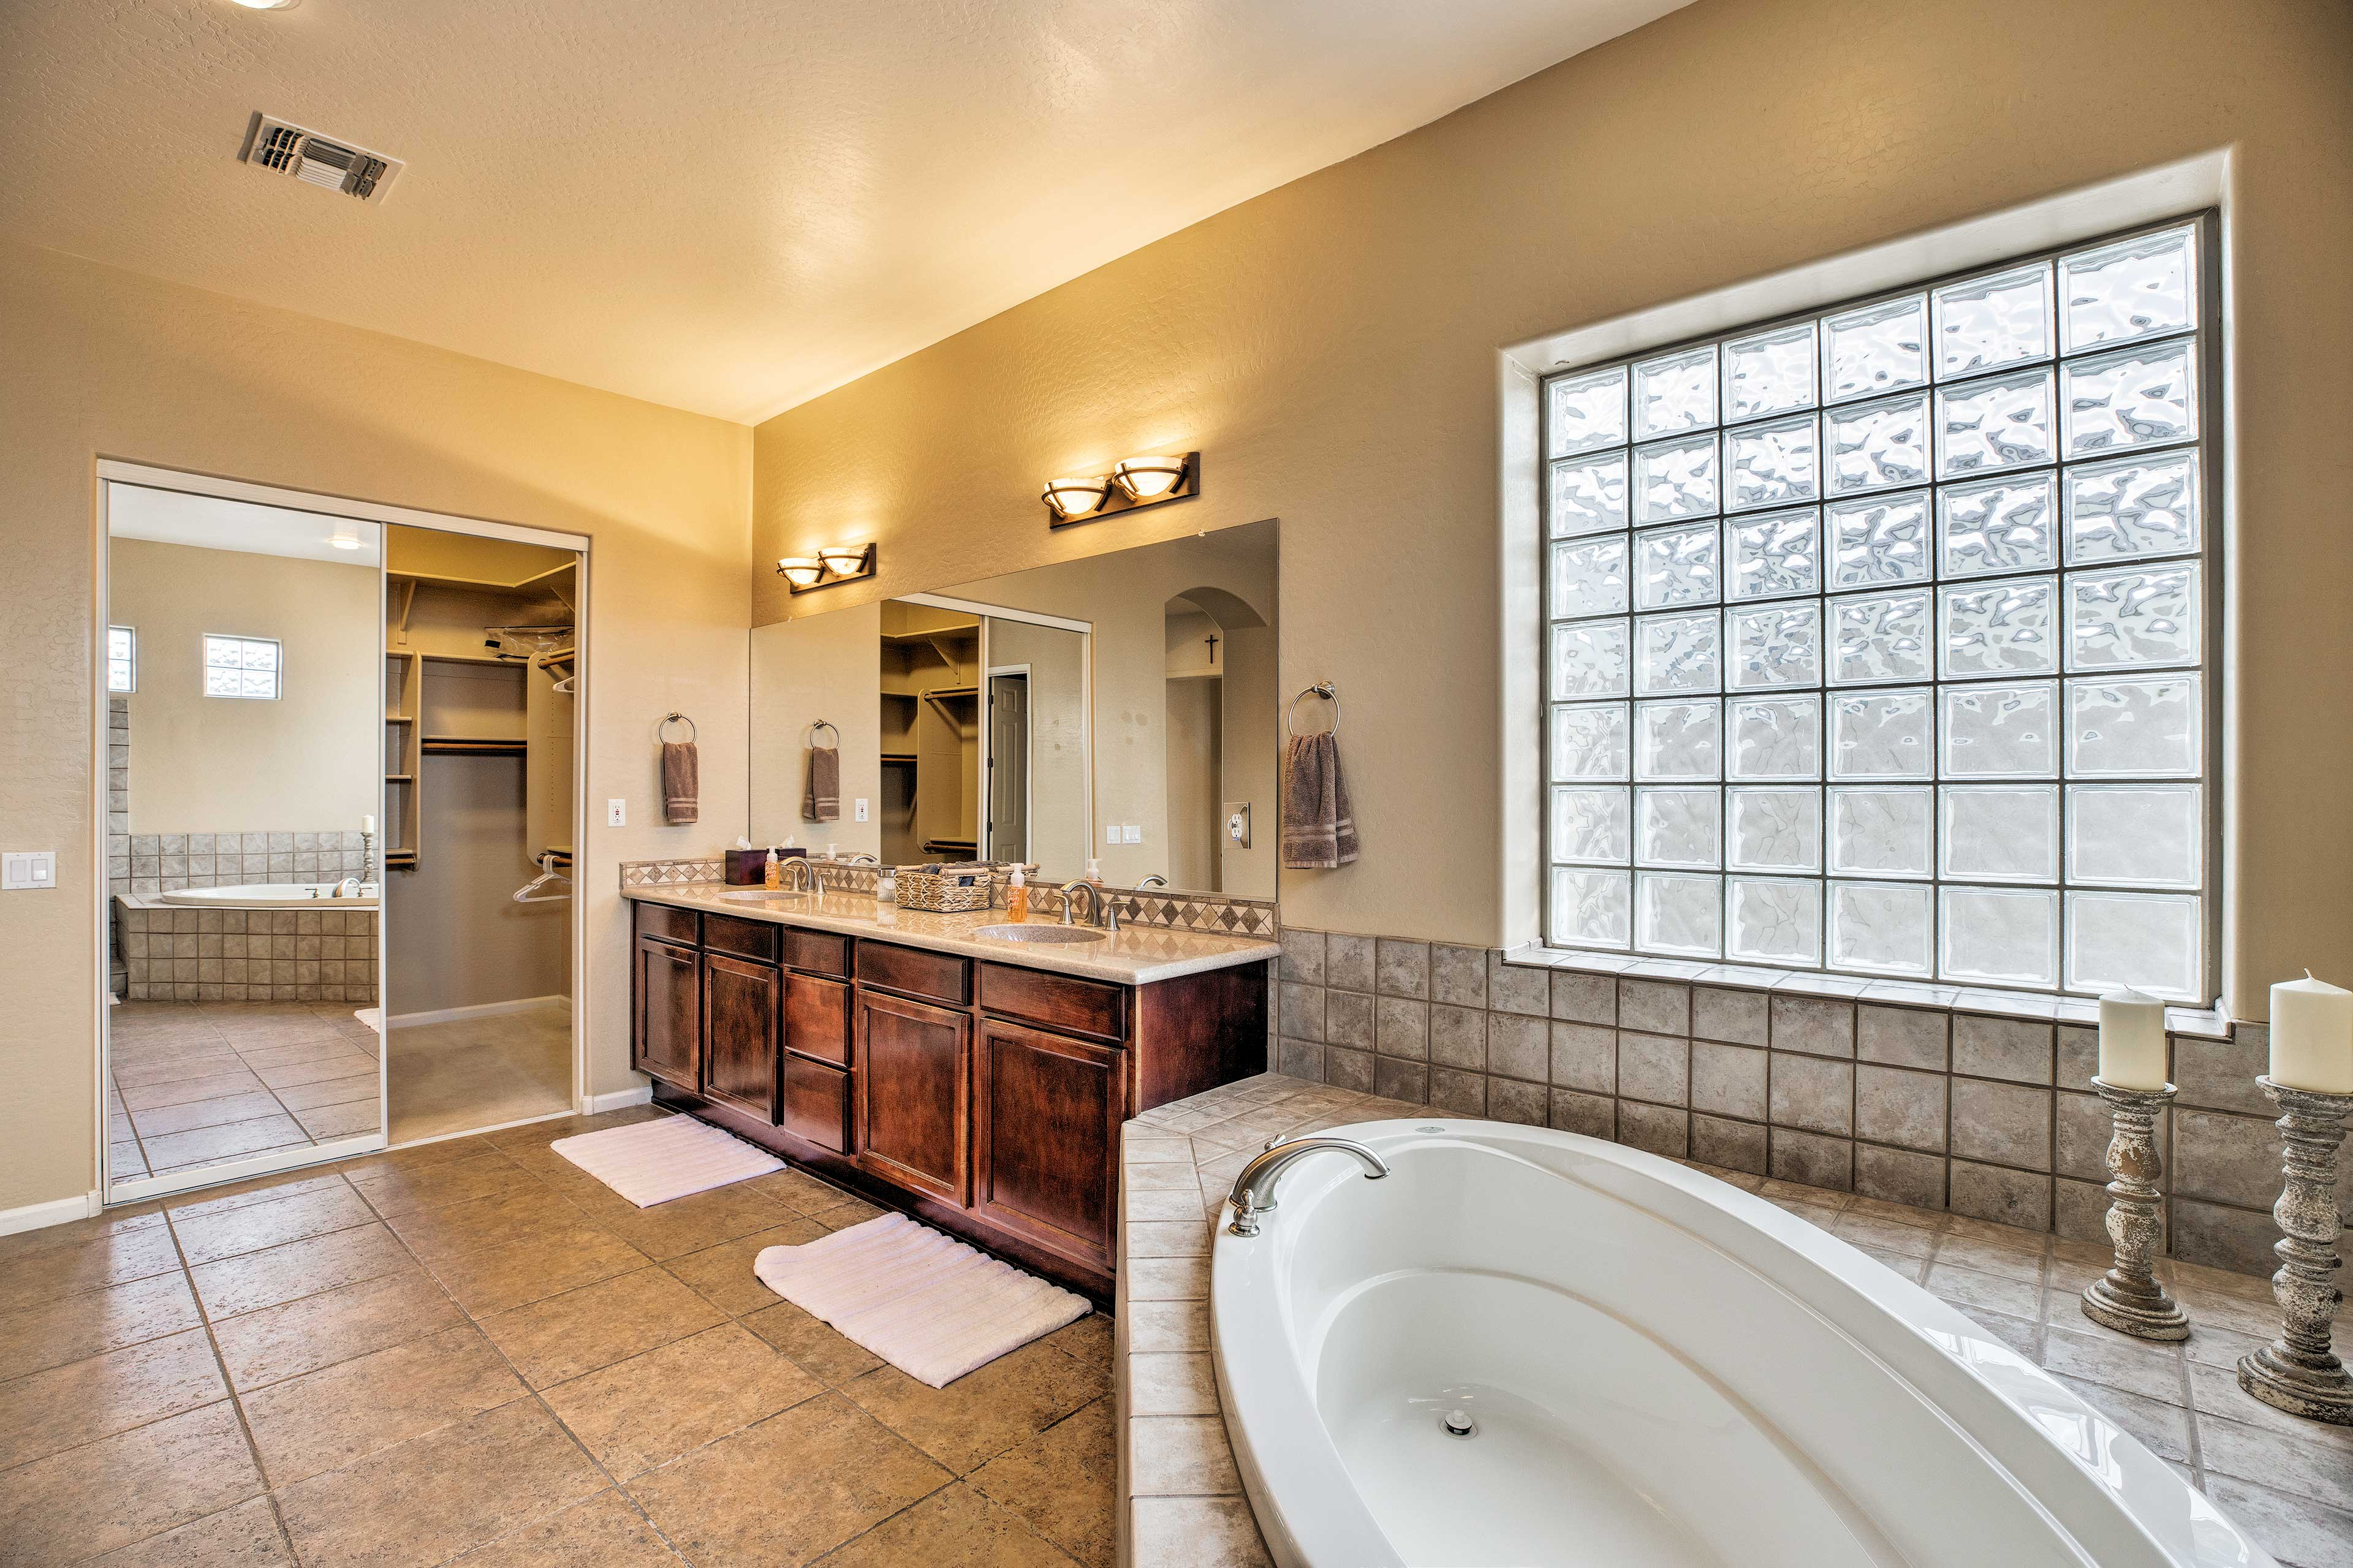 Did you know that dual sinks are the key to long-lasting relationships?